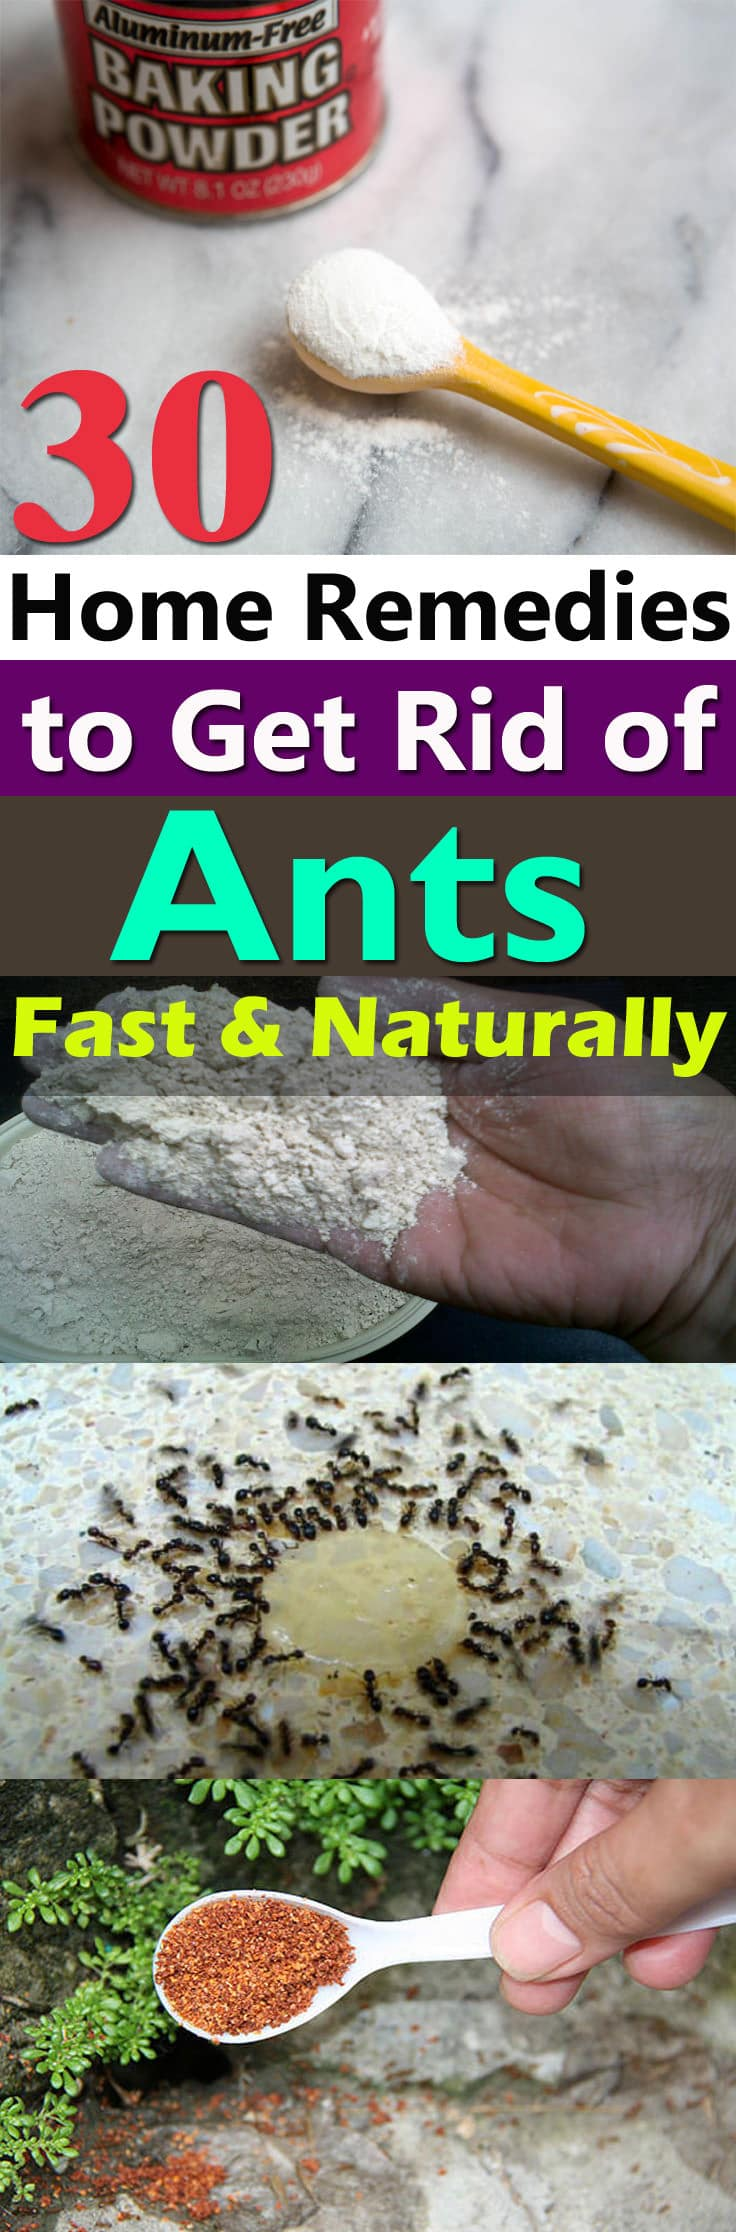 If you don't want to see ants crawling in your home and garden. Try one of these 30 Natural Home Remedies to Get Rid of Ants!